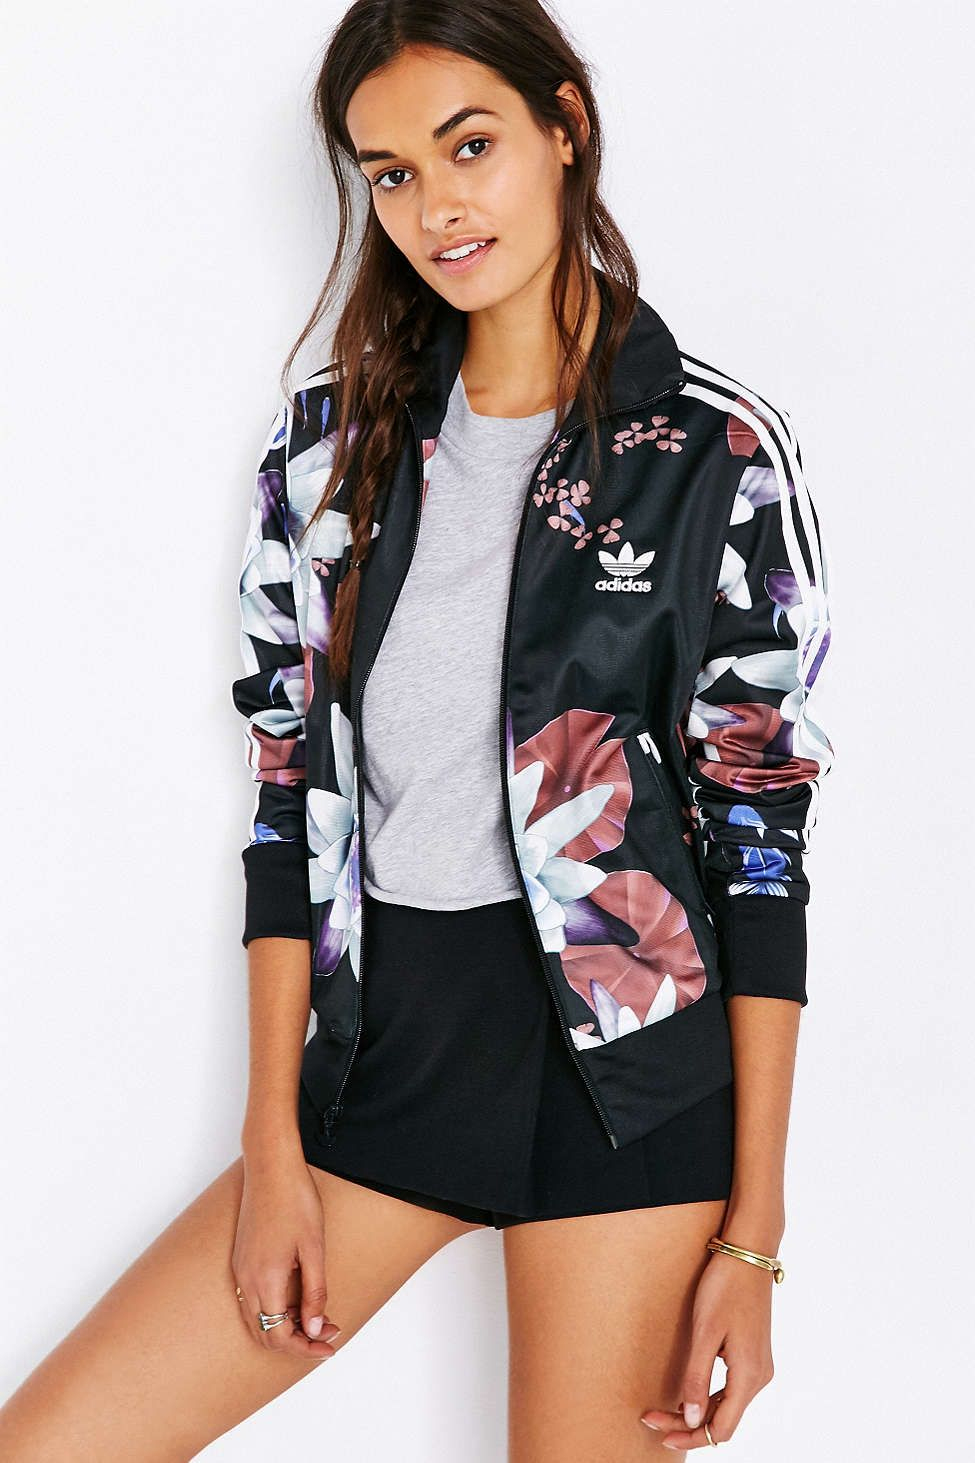 adidas Originals Lotus Print Track Jacket | Fashion, Adidas